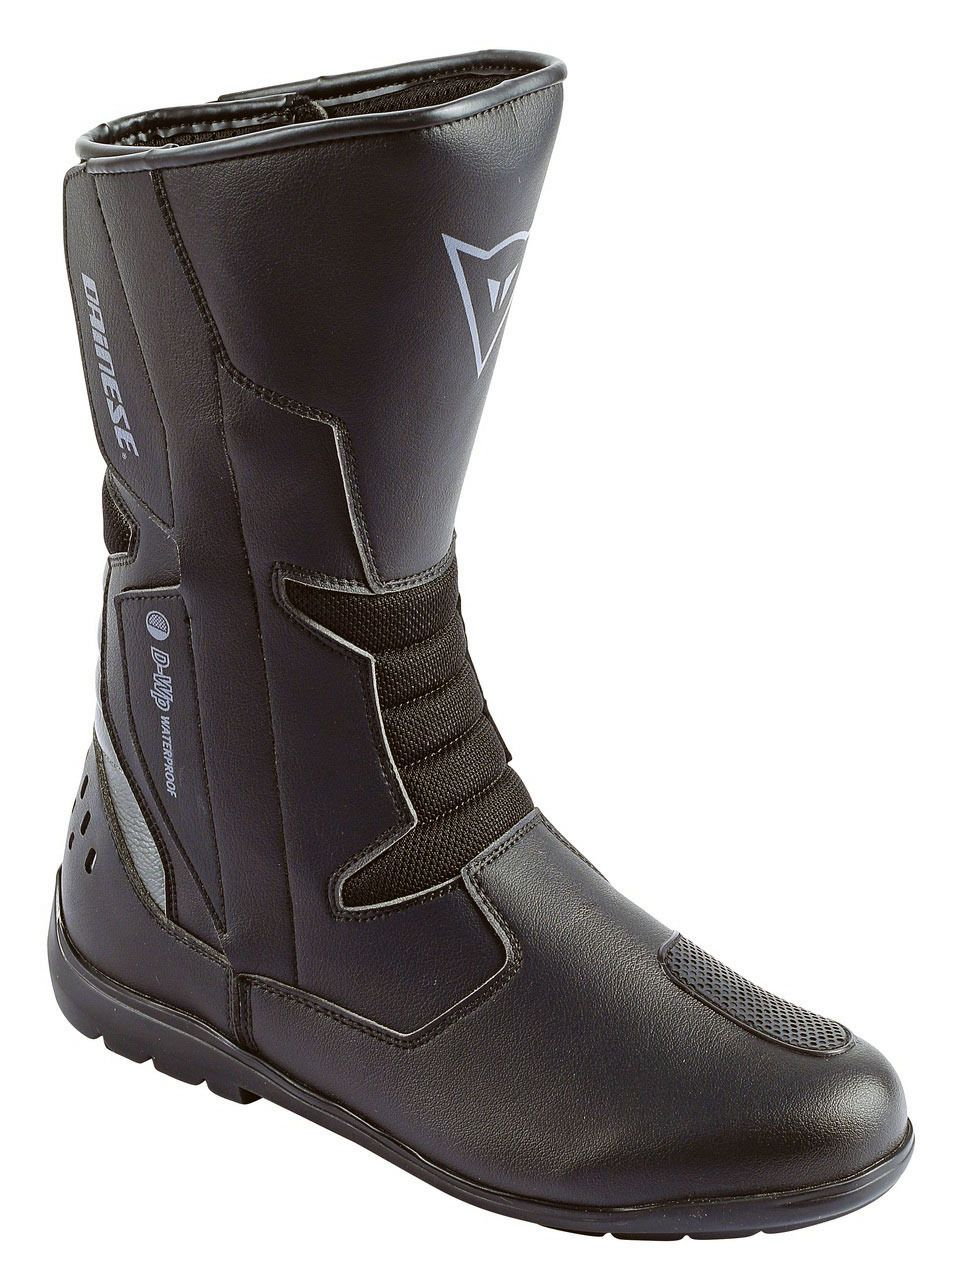 Dainese tempest d wp boots revzilla for D garage dainese corbeil horaires